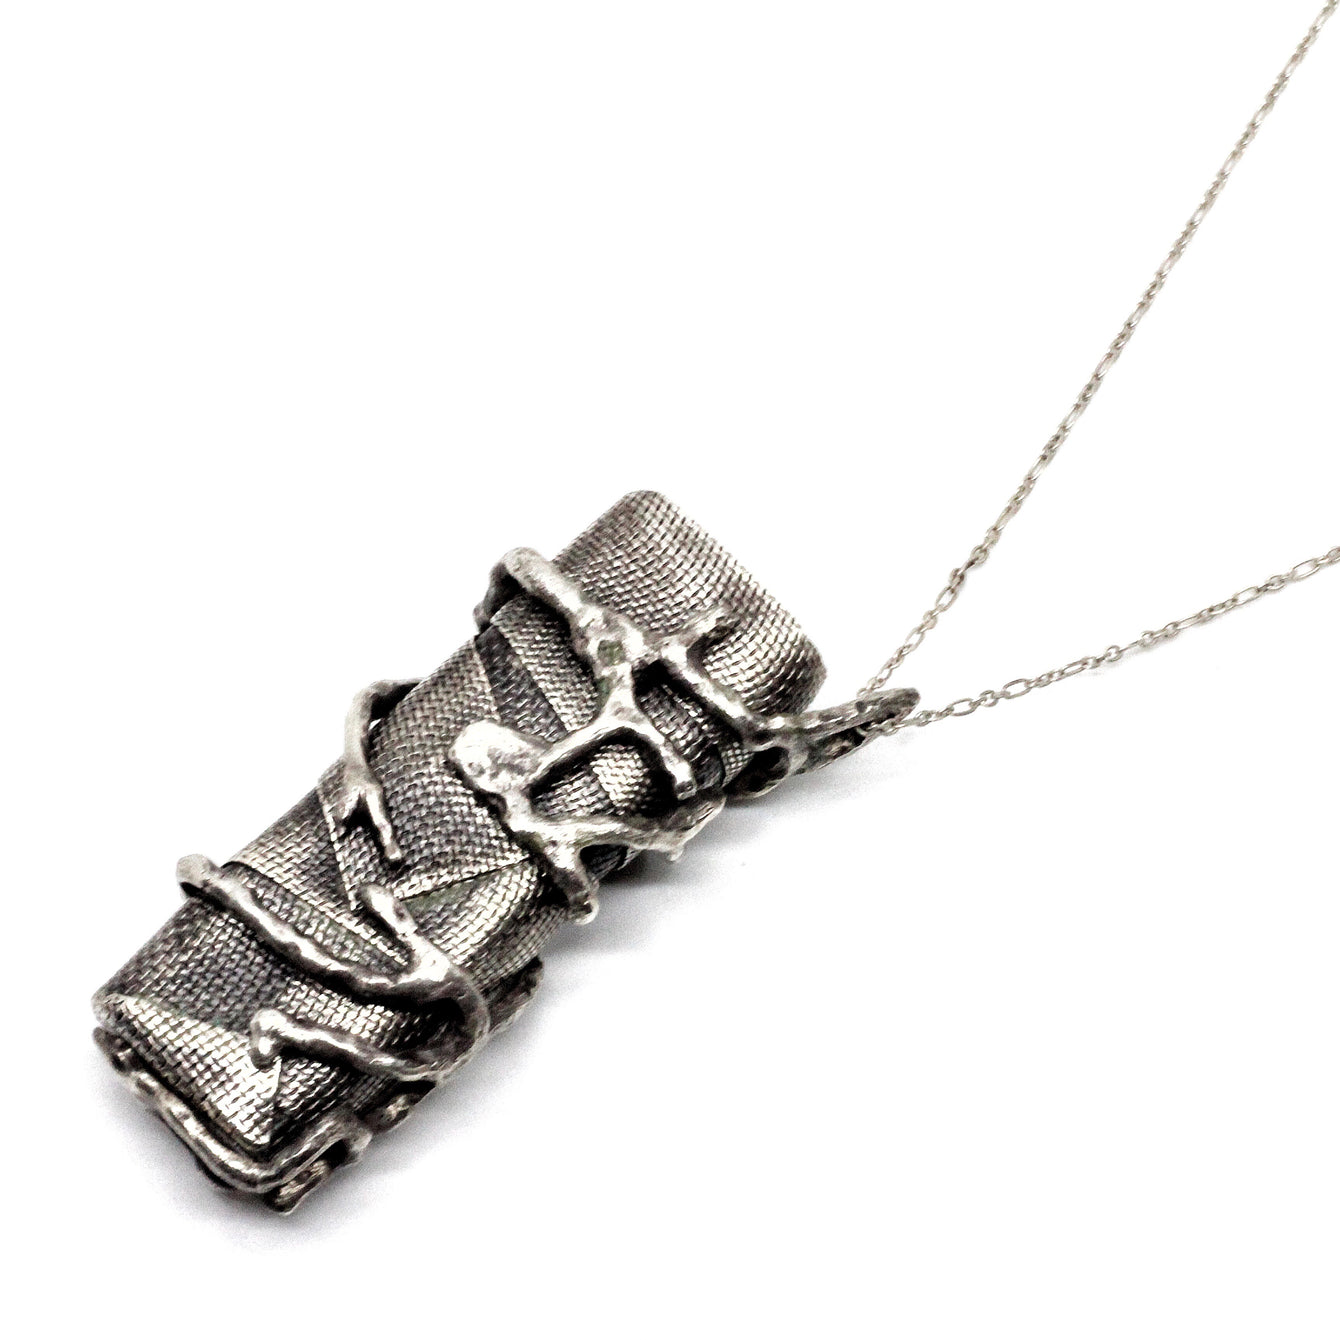 Empress 47 sterling silver lighter set necklace